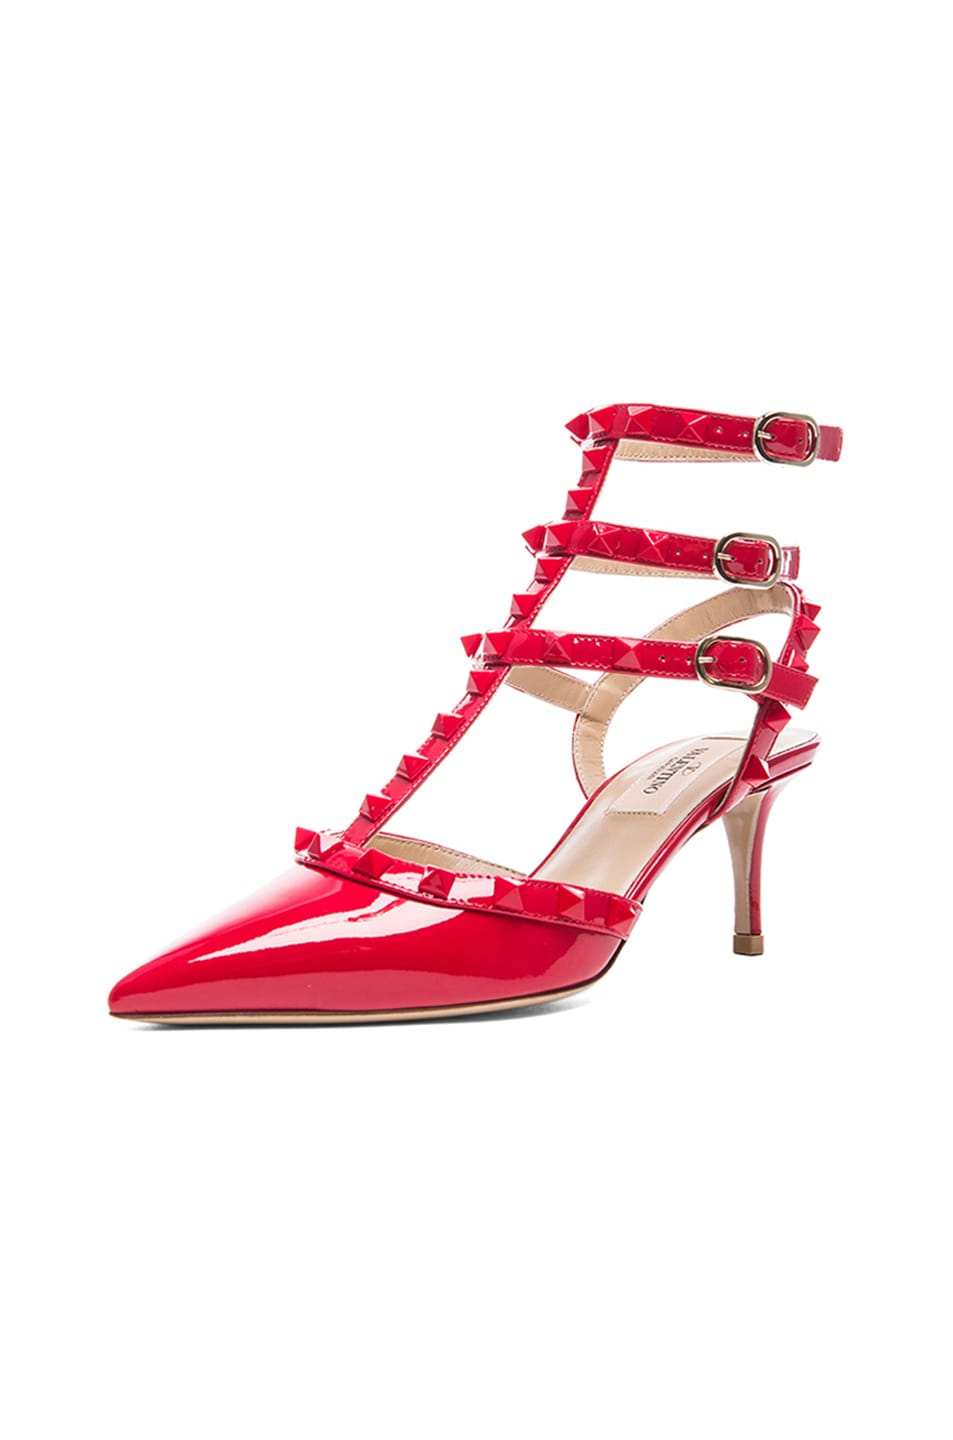 Image 2 of Valentino Rockstud Punkouture Patent Slingbacks T.65 in Red